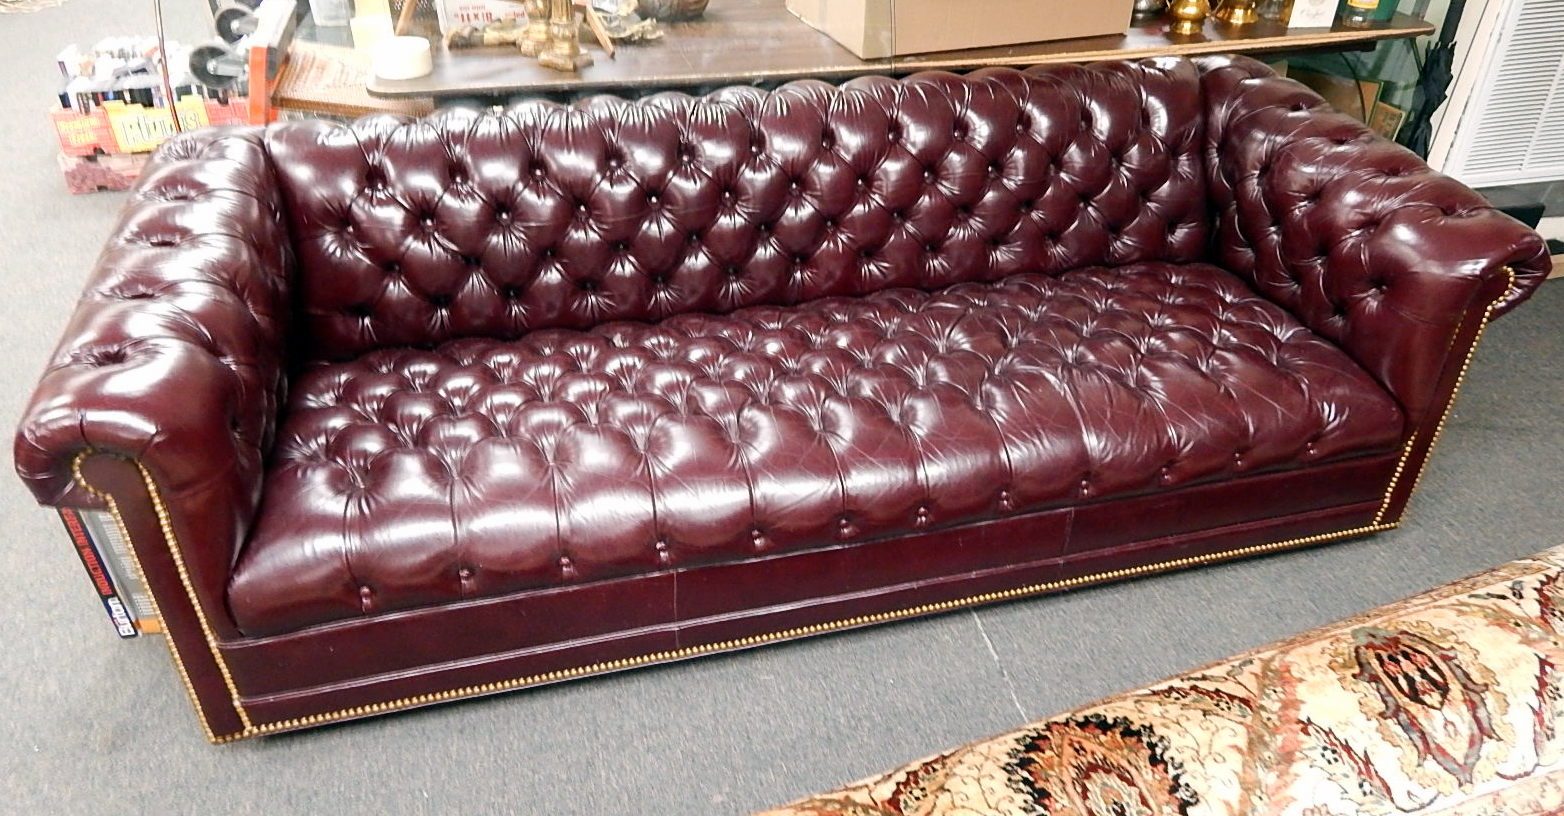 Sofa Couch Or Chesterfield Chesterfield Burgundy Leather Sofa Couch Nailhead Tufted Buttoned